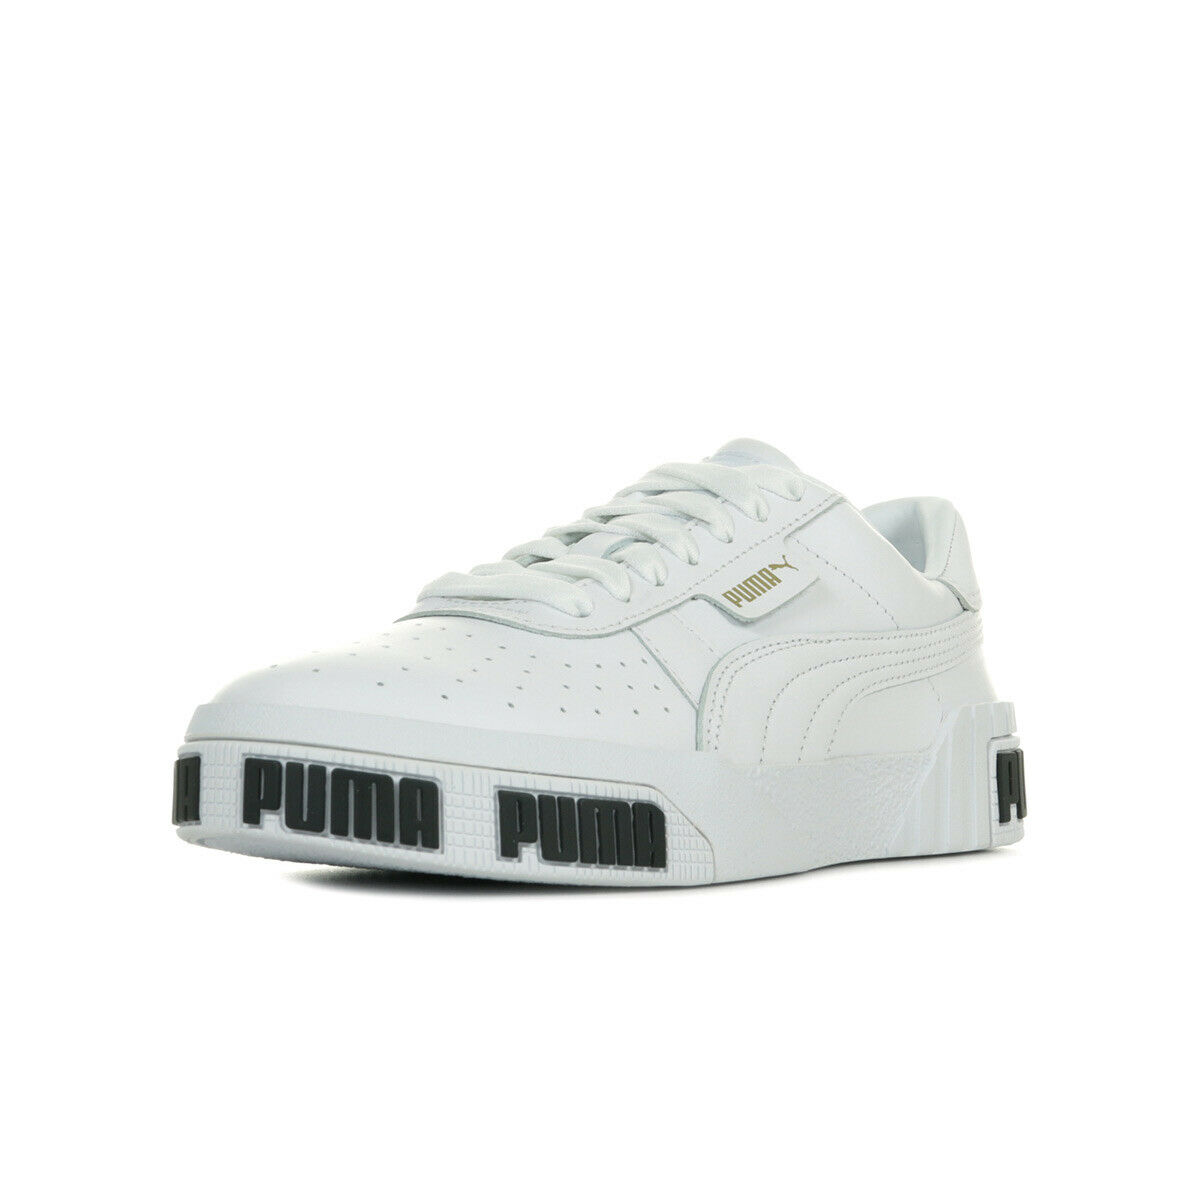 Puma shoes sneakers woman cali bold wn's white size white leather laces